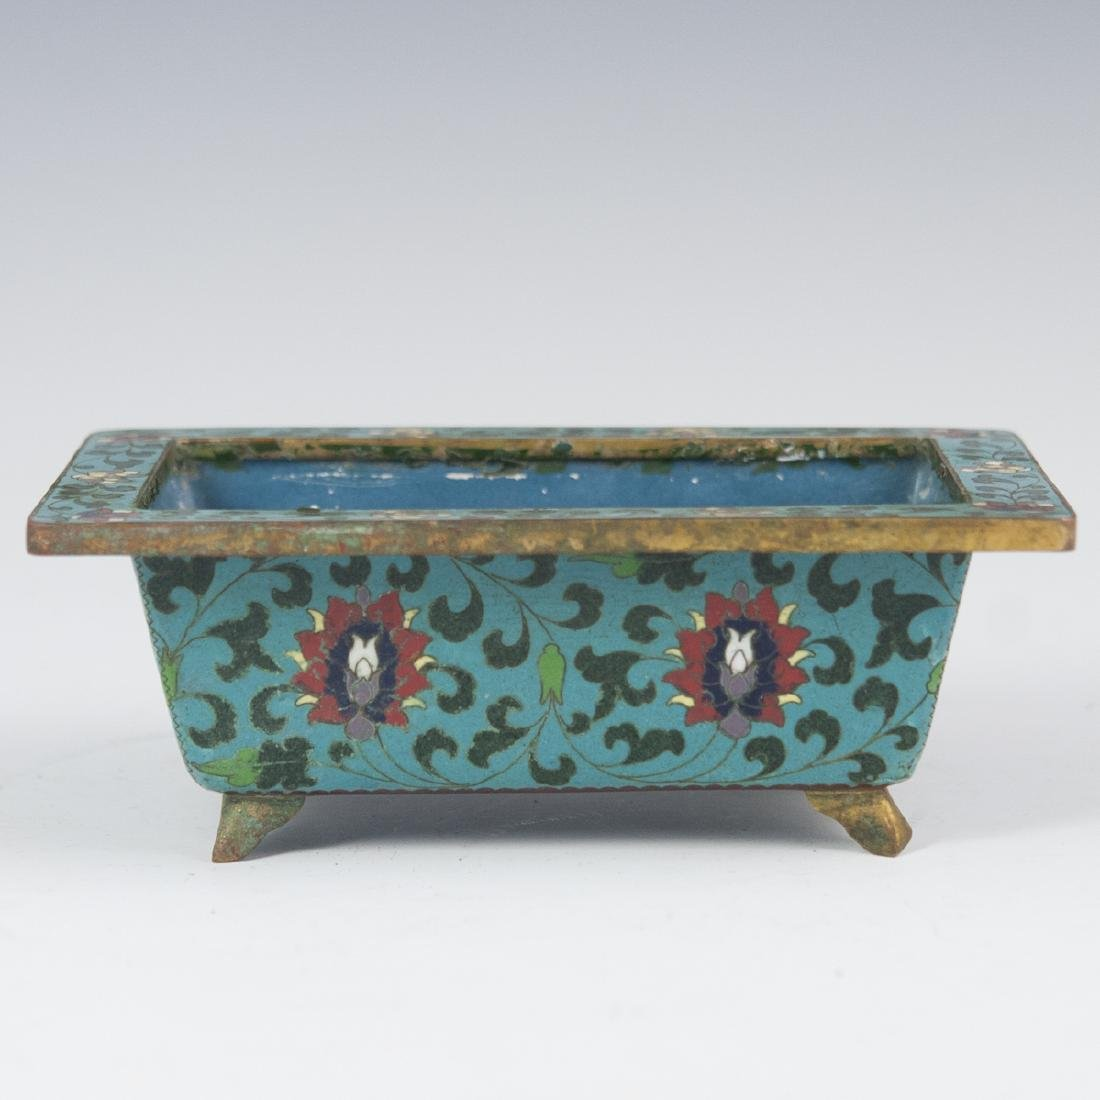 Chinese Cloisonne Enameled Footed Planter